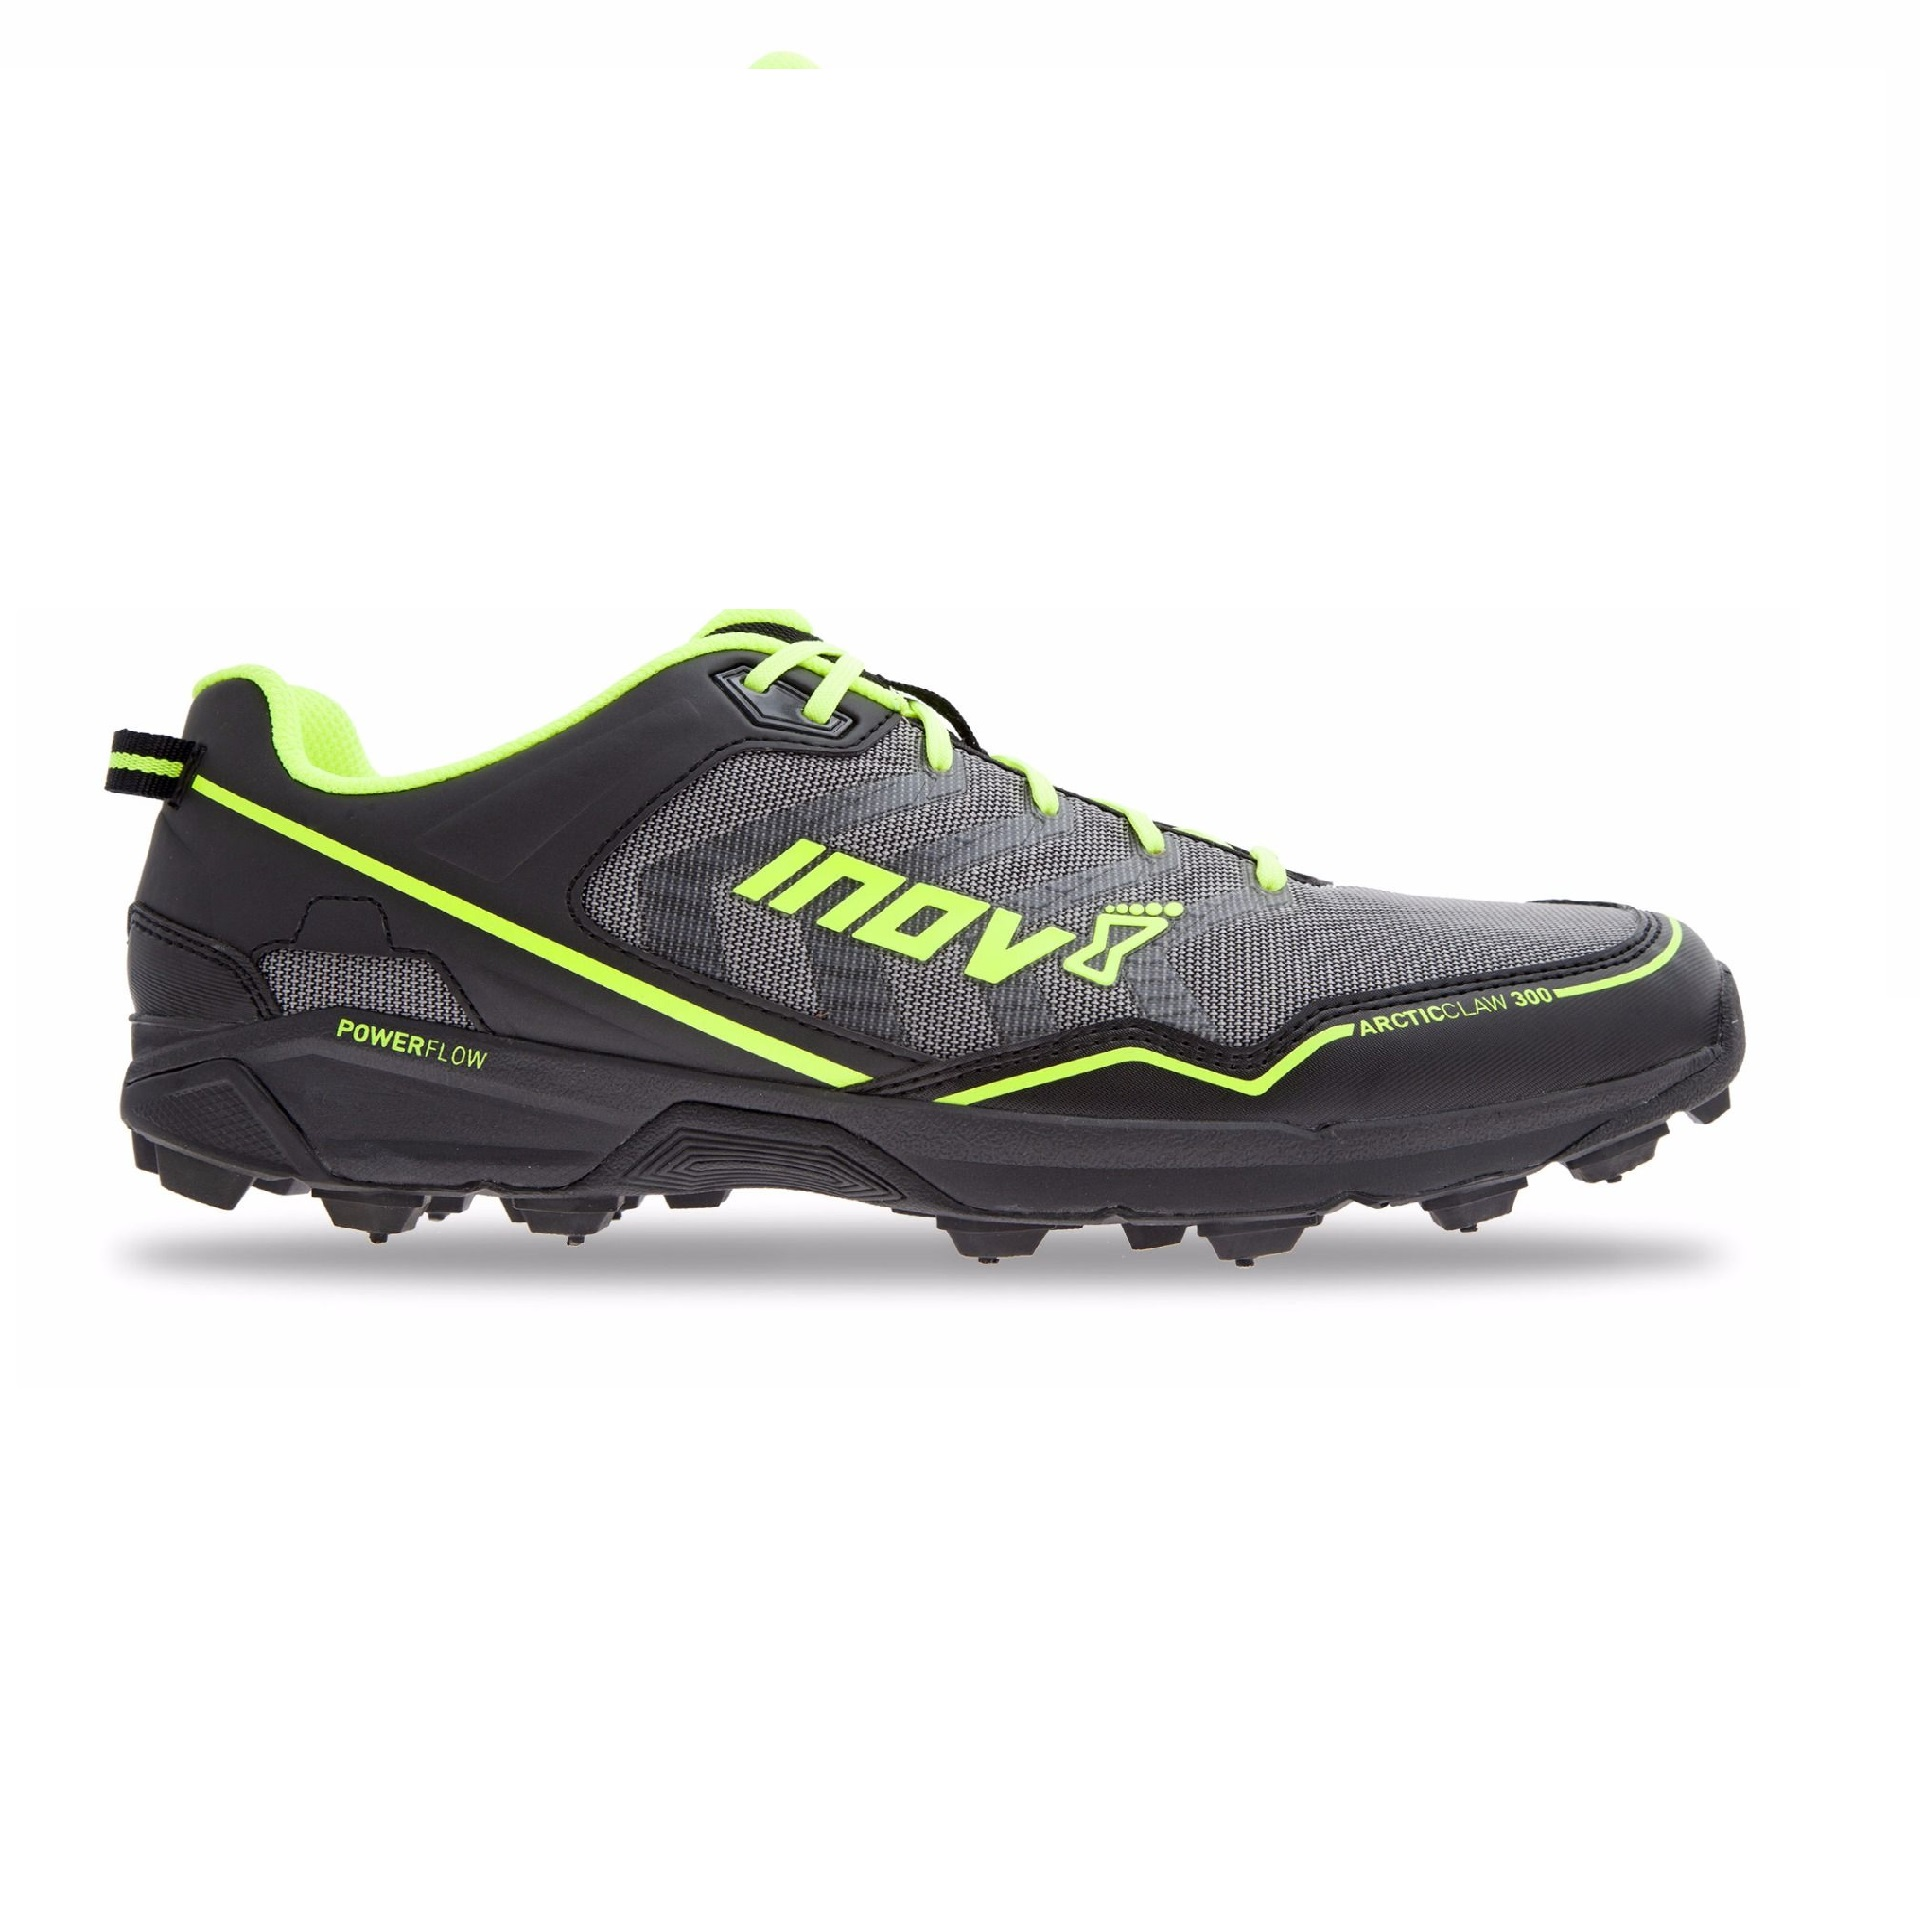 Inov-8 Arctic Claw 300 Unisex Snow/Trail Shoes